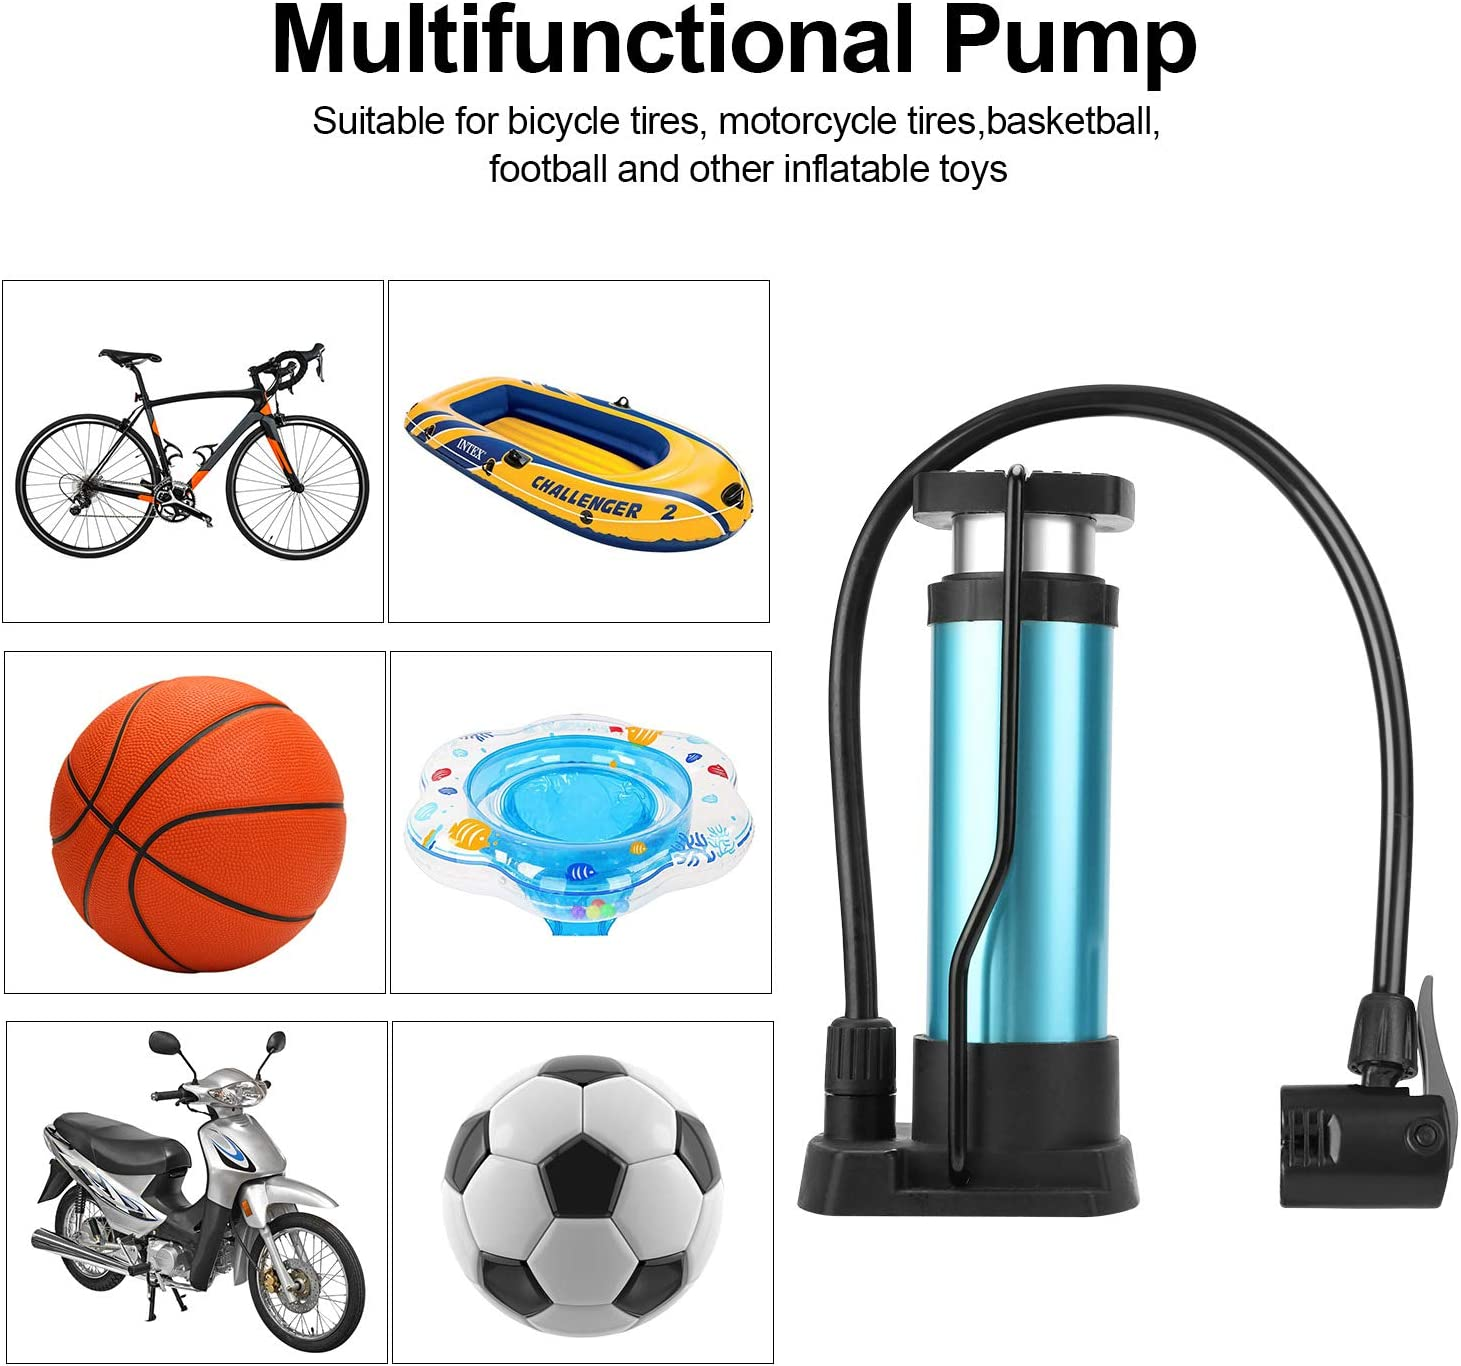 Foot Activated Bicycle Pump QKURT Bike Pump Mountain and BMX Bikes Aluminum Alloy Bicycle Tire Pump for Road Portable Mini Bicycle Pump fits Universal Presta and Schrader